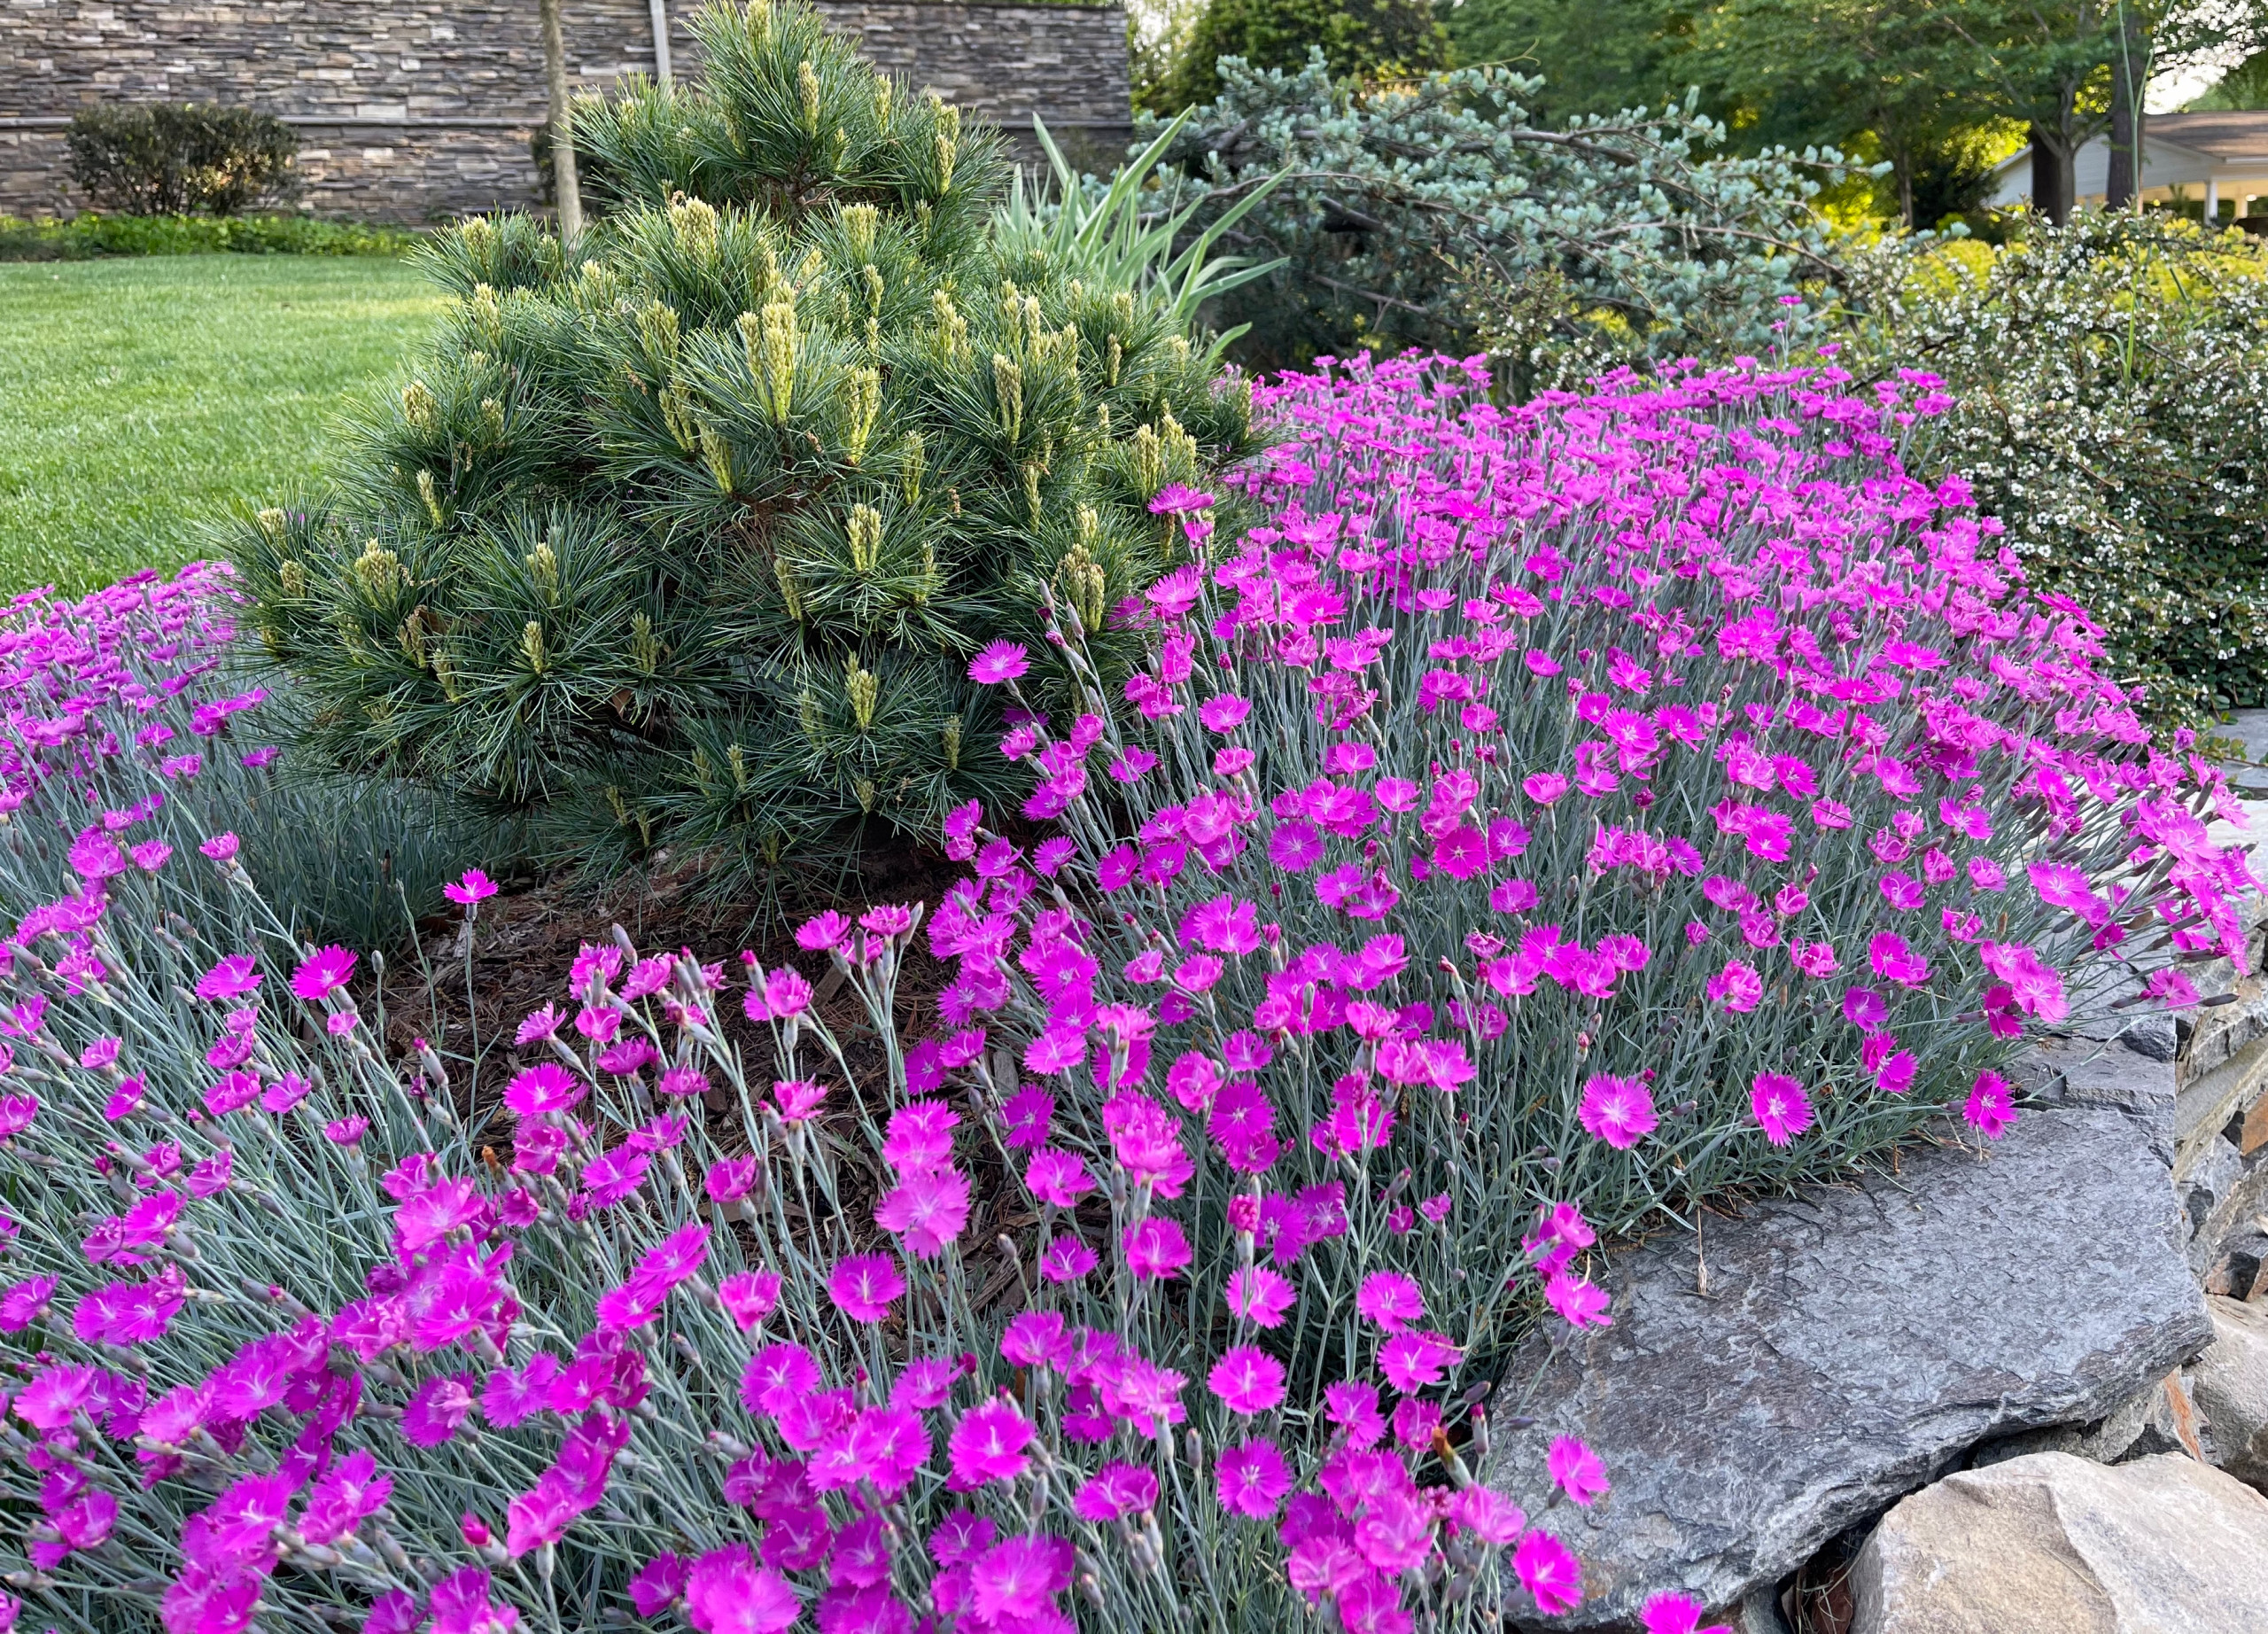 Dianthus and pine